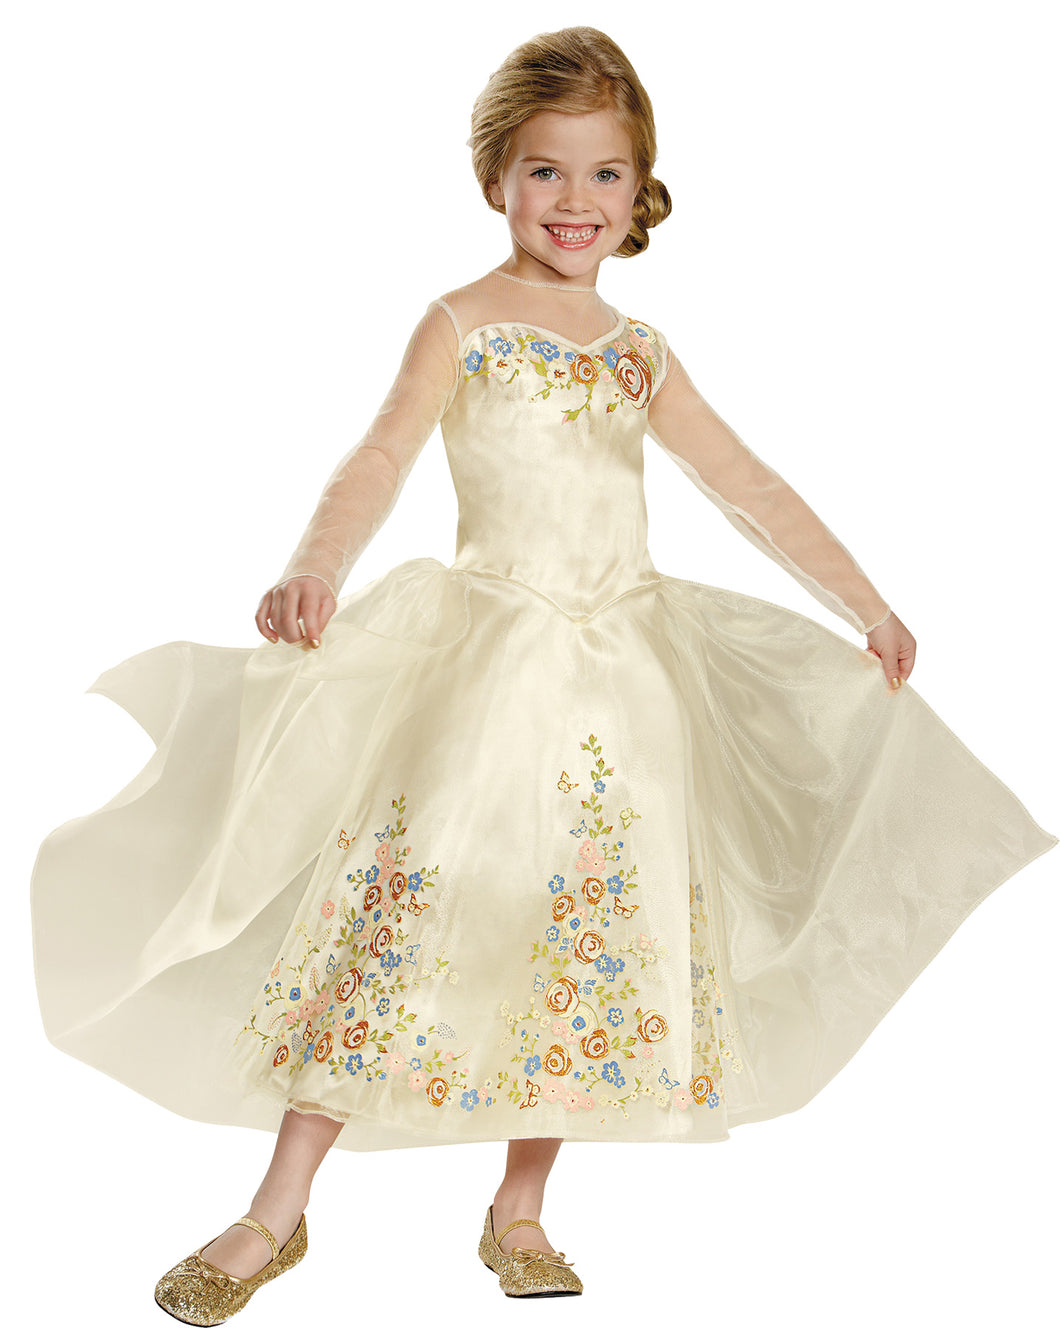 Toddler - Cinderella's Wedding Dress